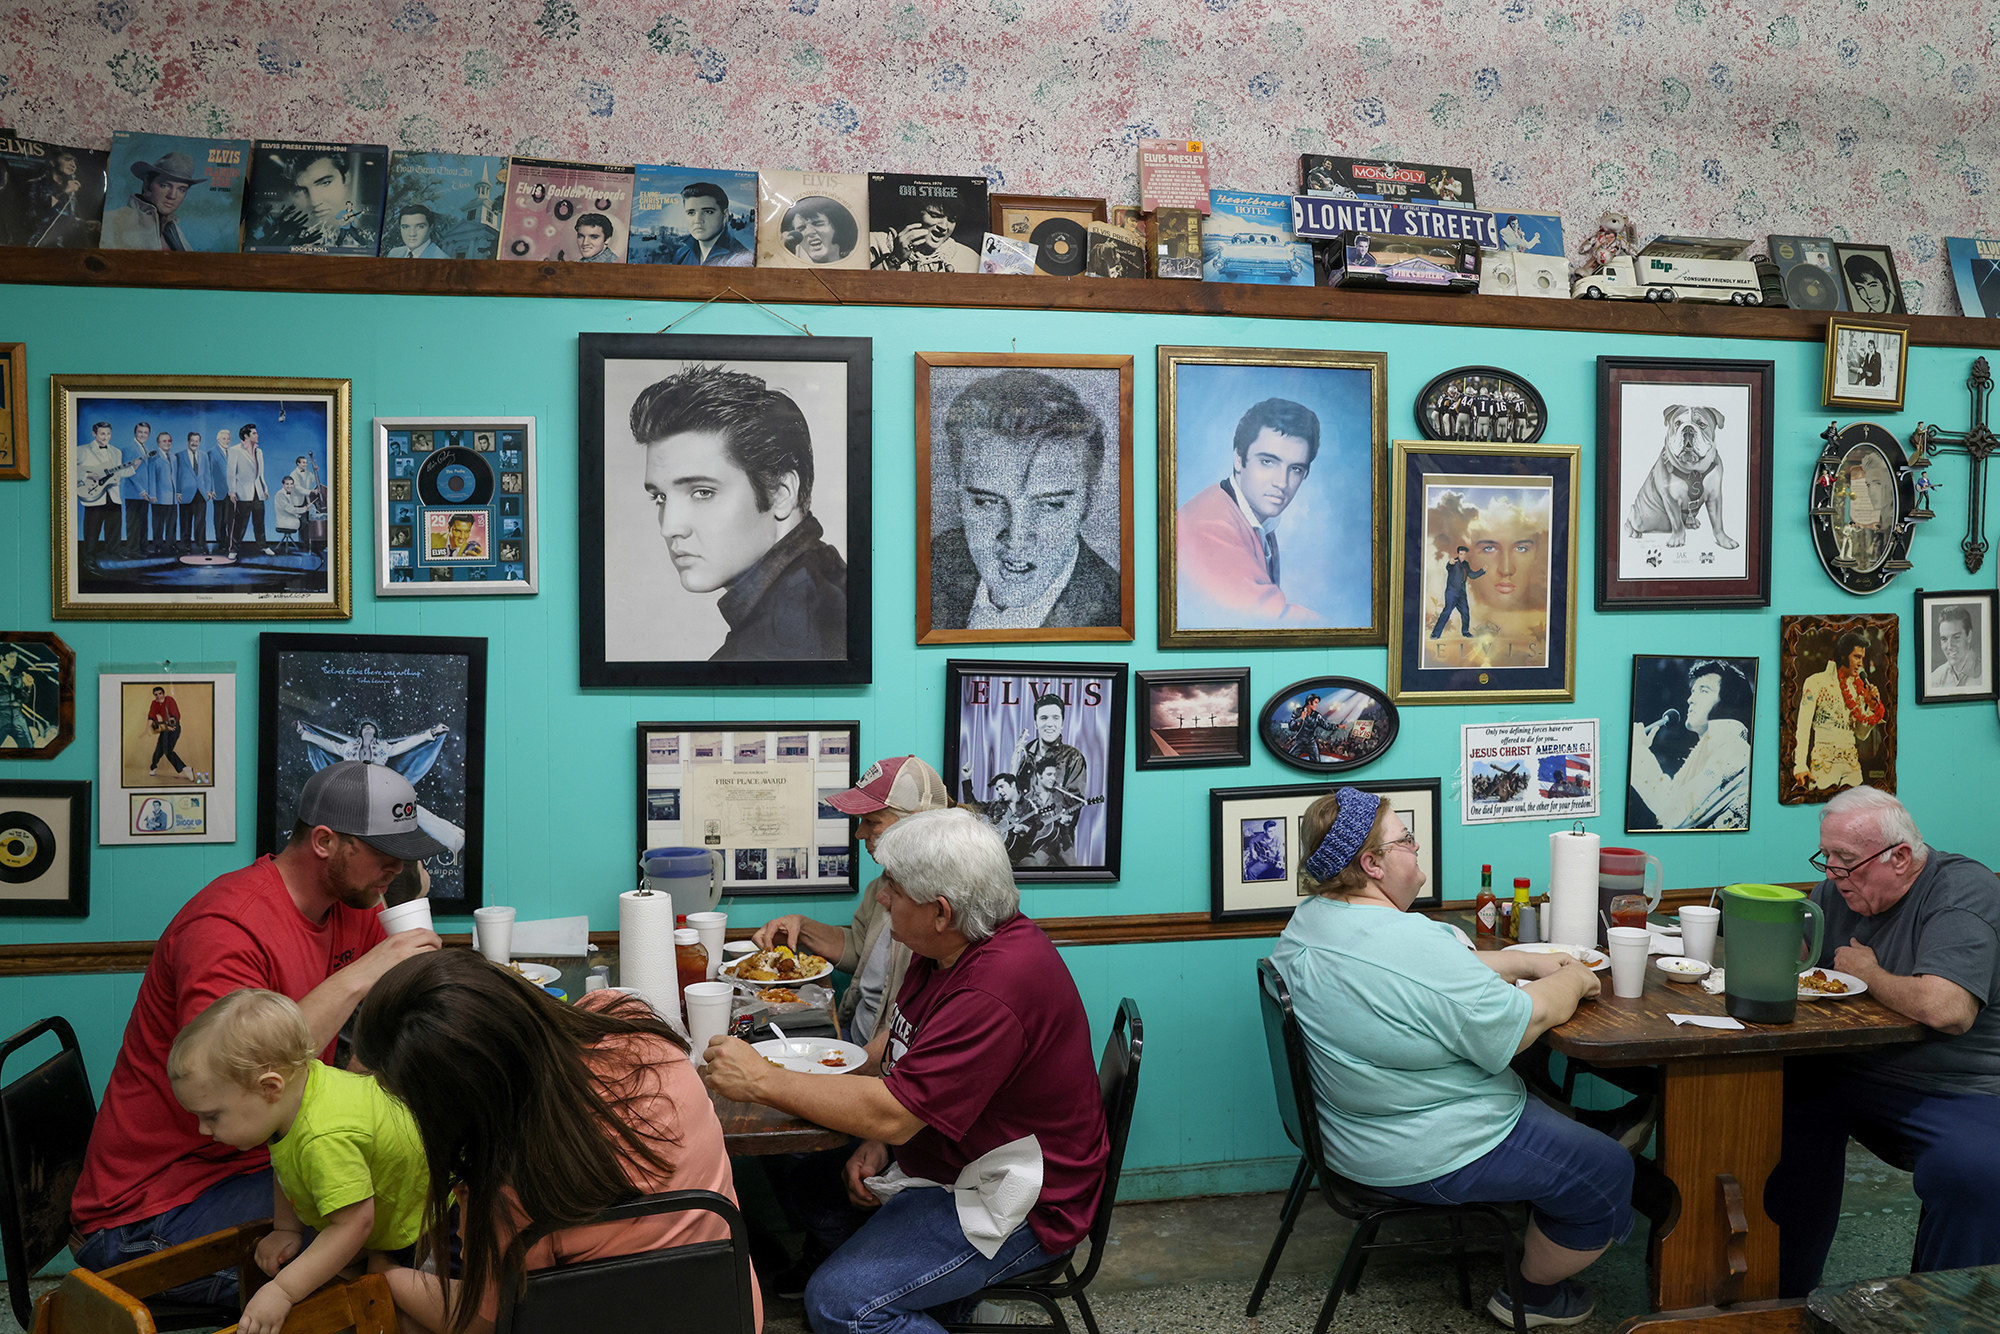 People gather maskless indoors at a restaurant with many pictures of Elvis on its walls